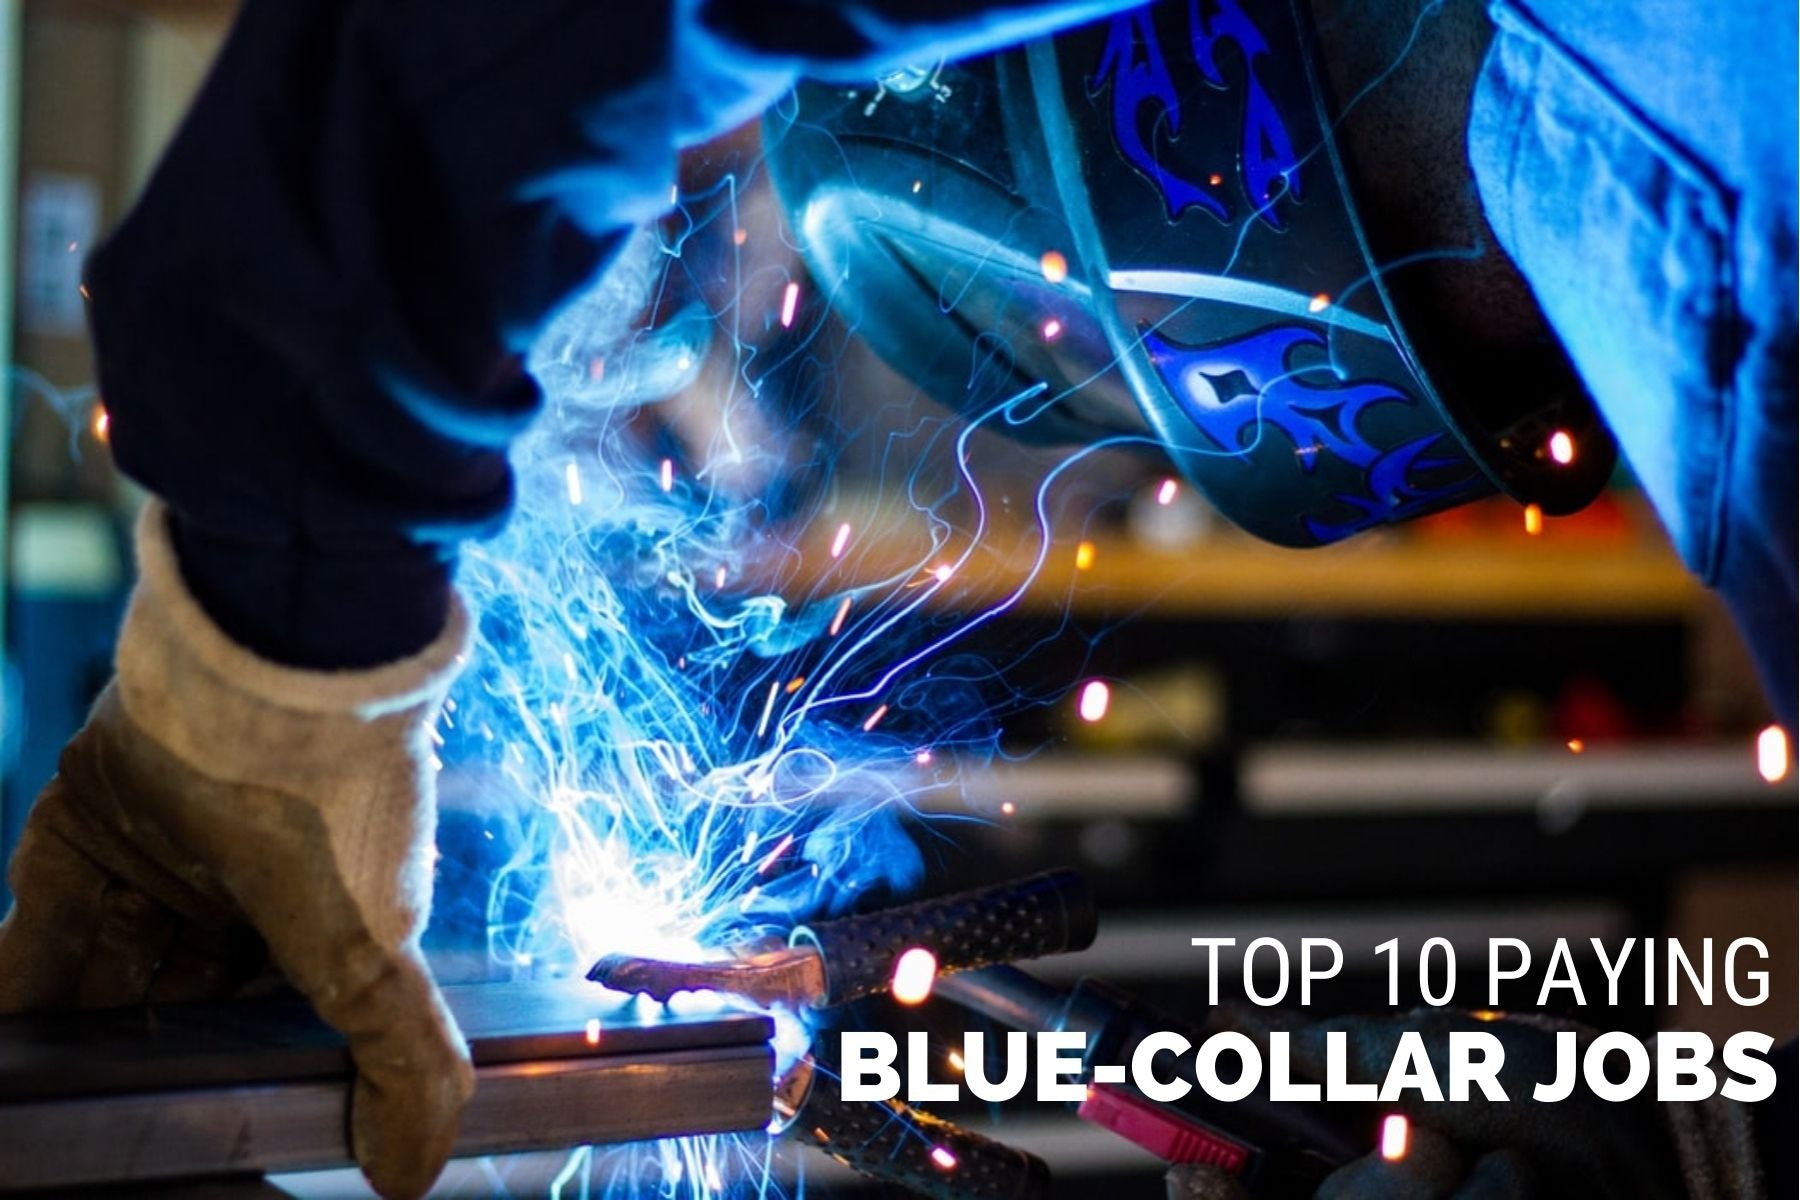 Top 10 Paying Blue Collar Jobs in America